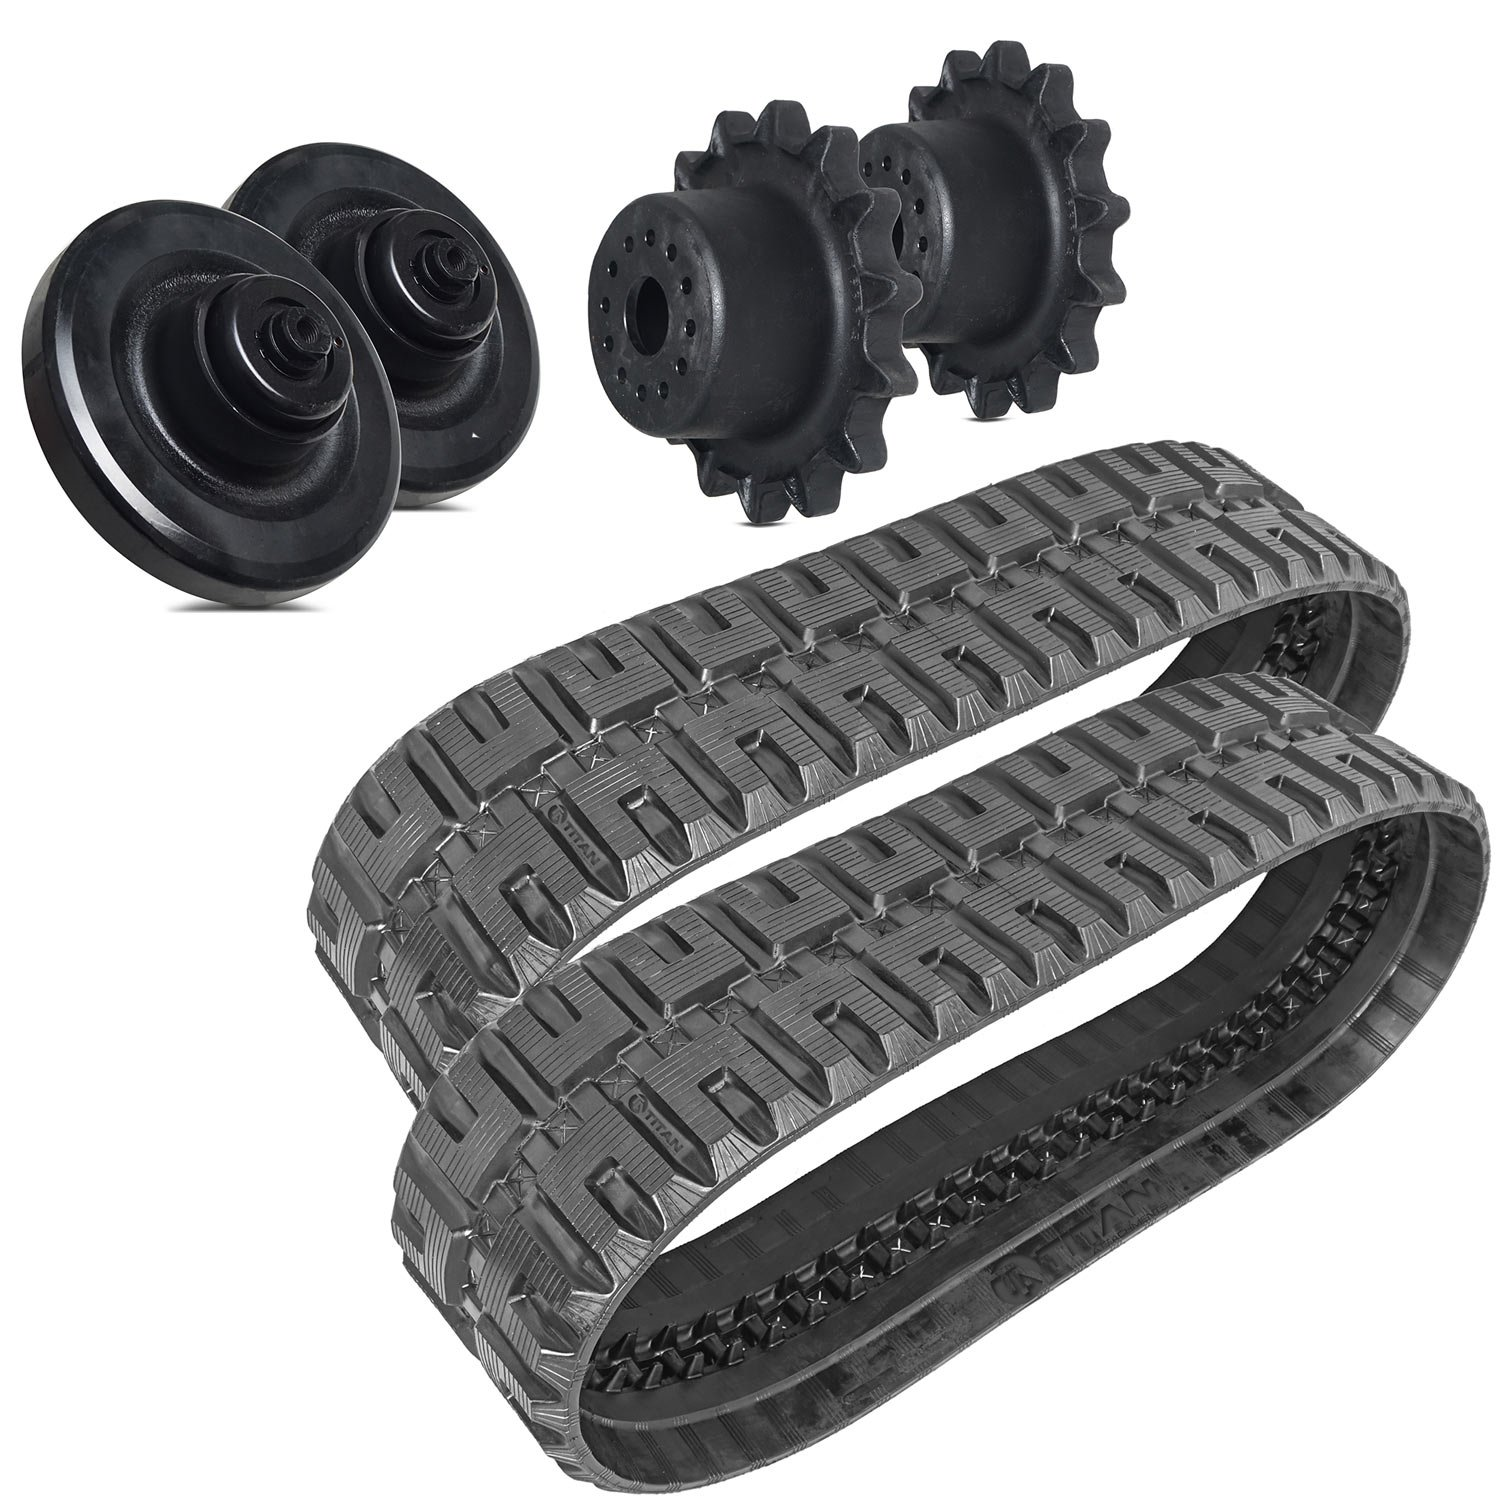 Titan Combo Rubber Tracks, Rear Idlers, & Drive Sprockets - Bobcat T180 T190